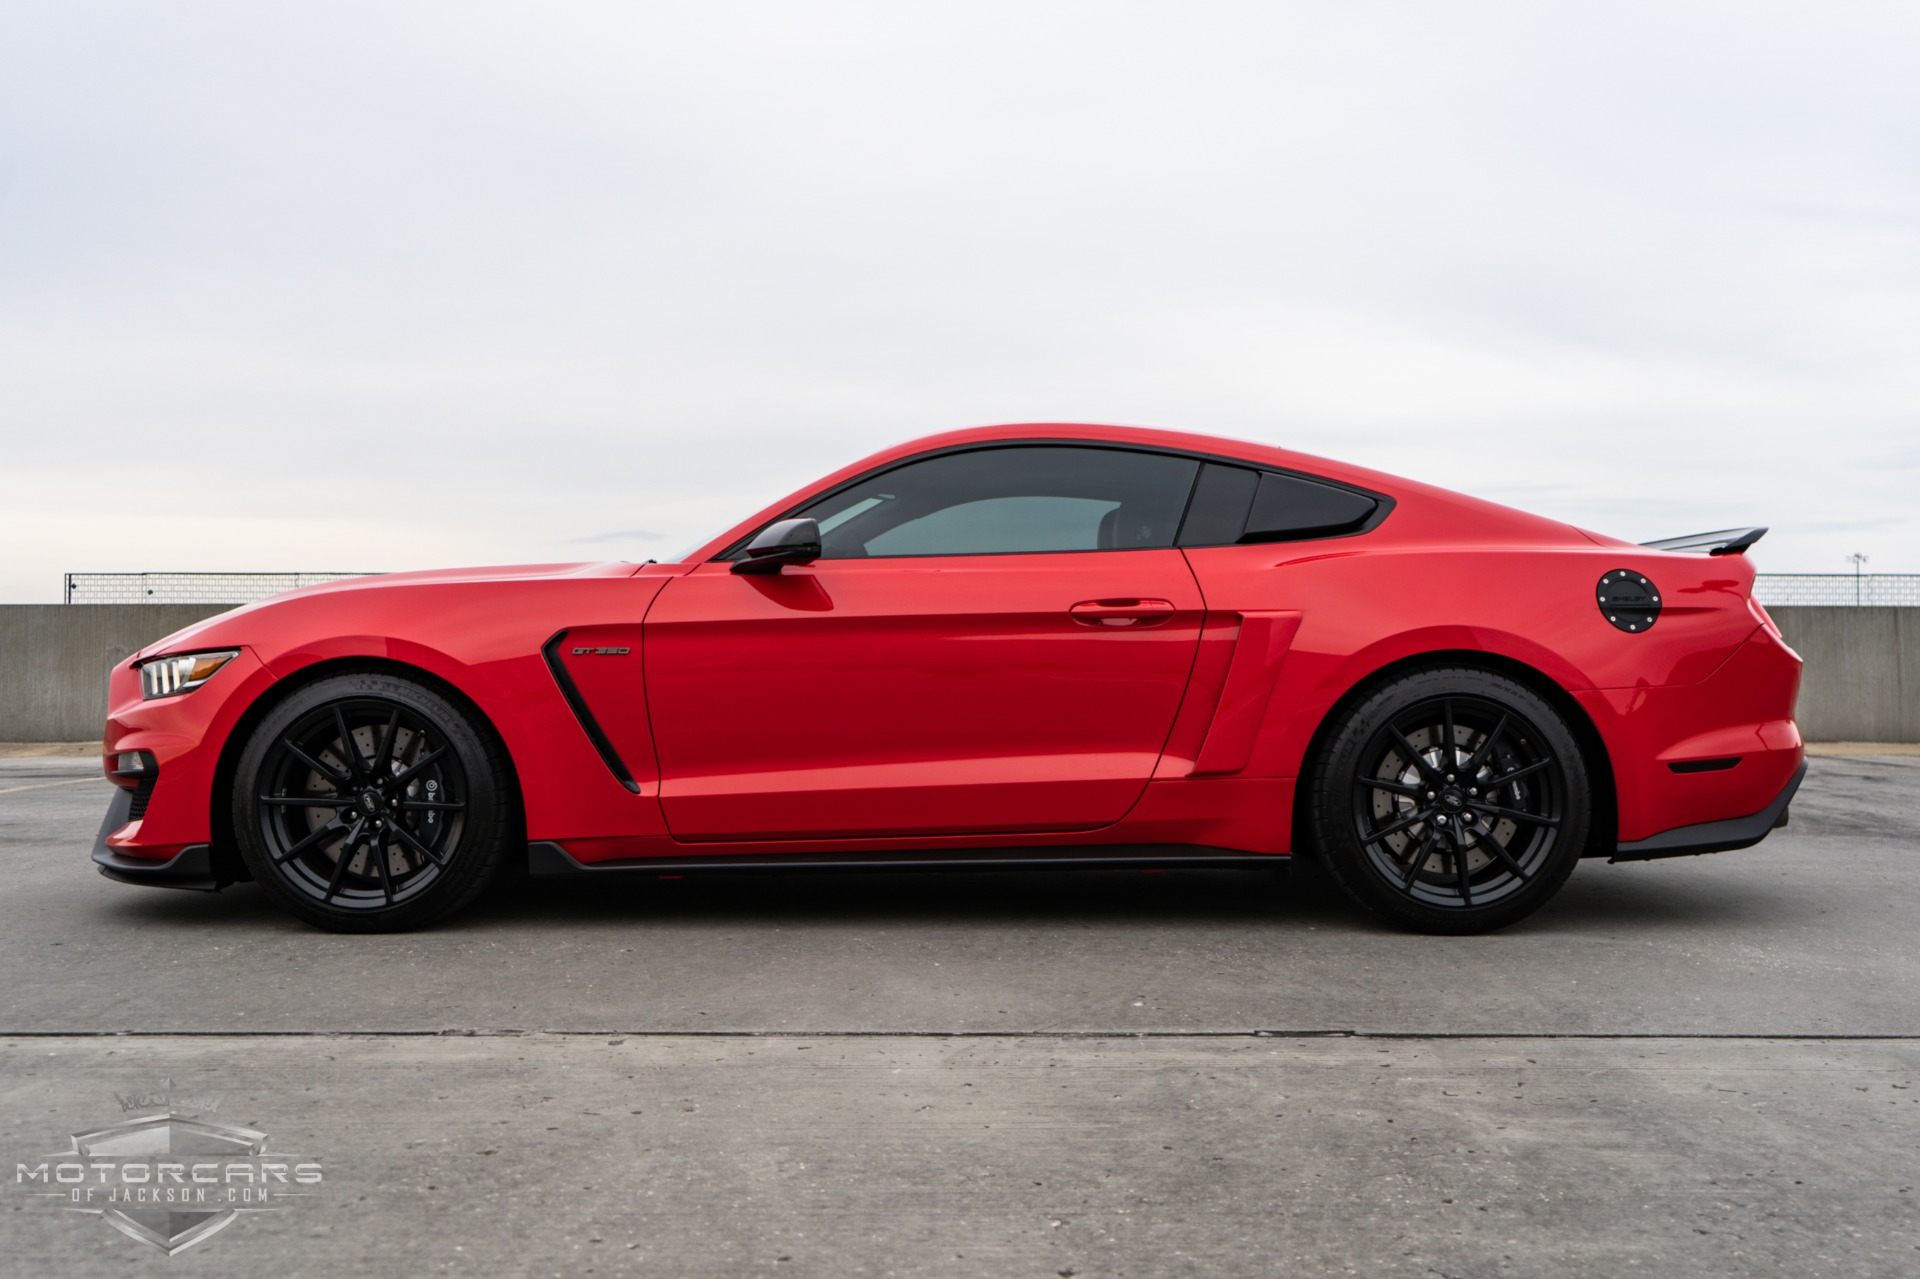 Used-2016-Ford-Mustang-Shelby-GT350-for-sale-Jackson-MS